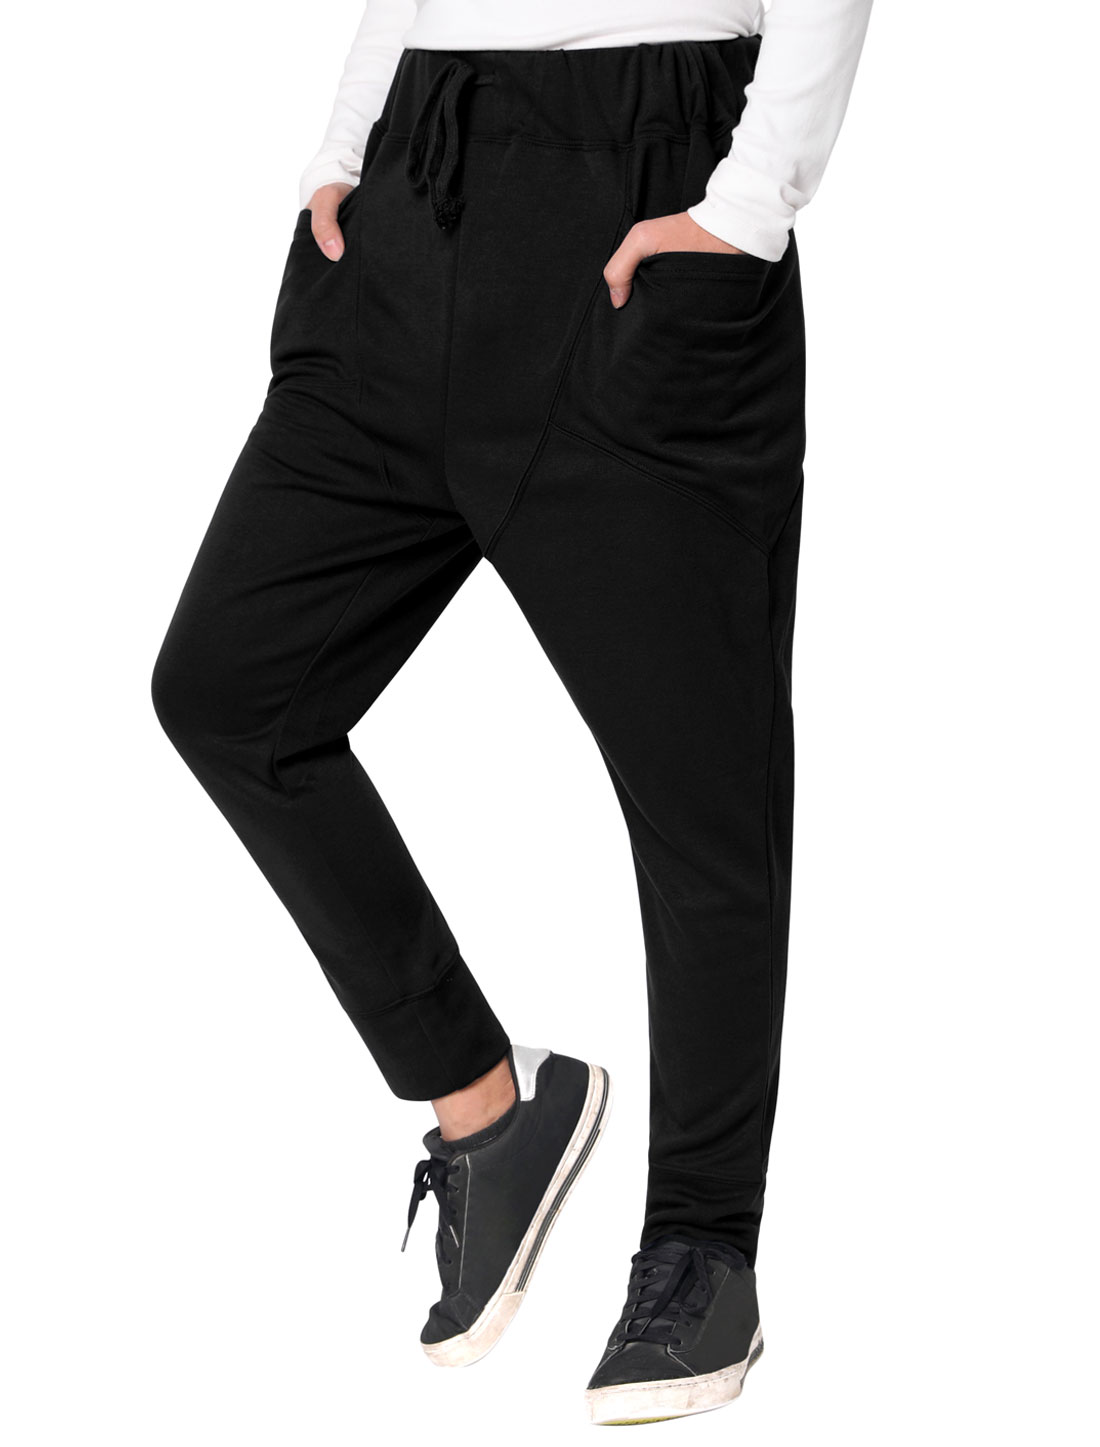 Men NEW Big Pockets Design Stretchy Waist Leisure Trousers W36/38